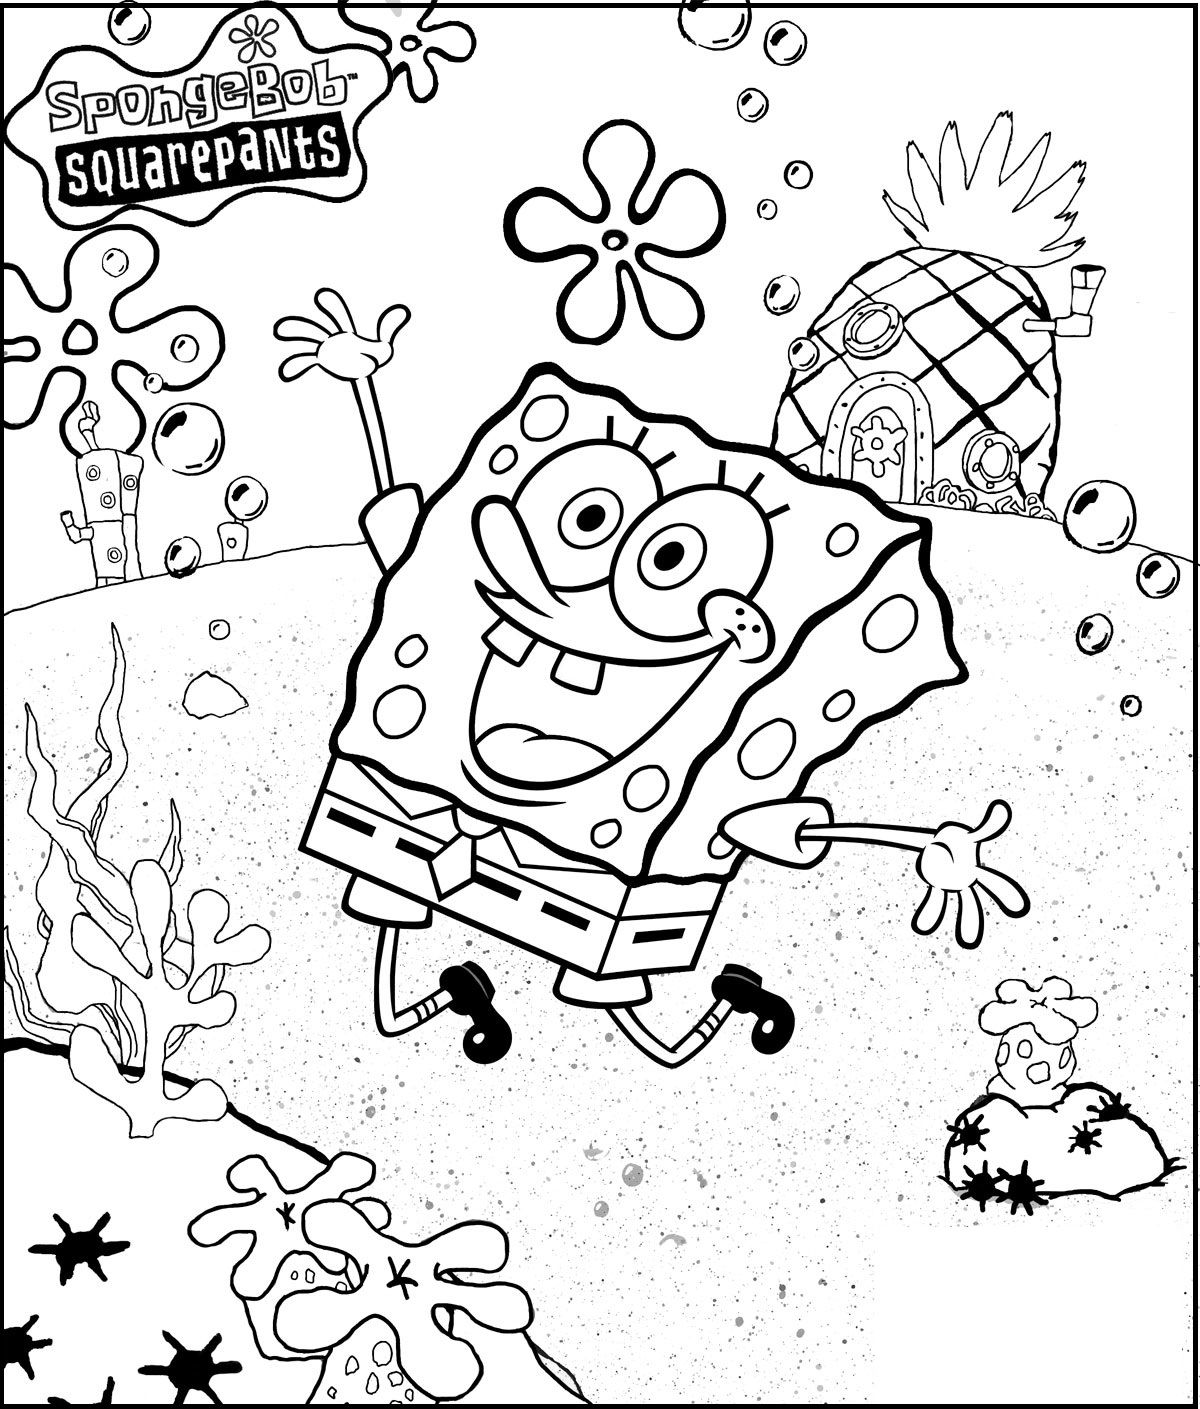 Spongebob Very Merry coloring picture for kids | Coloring Parties ...